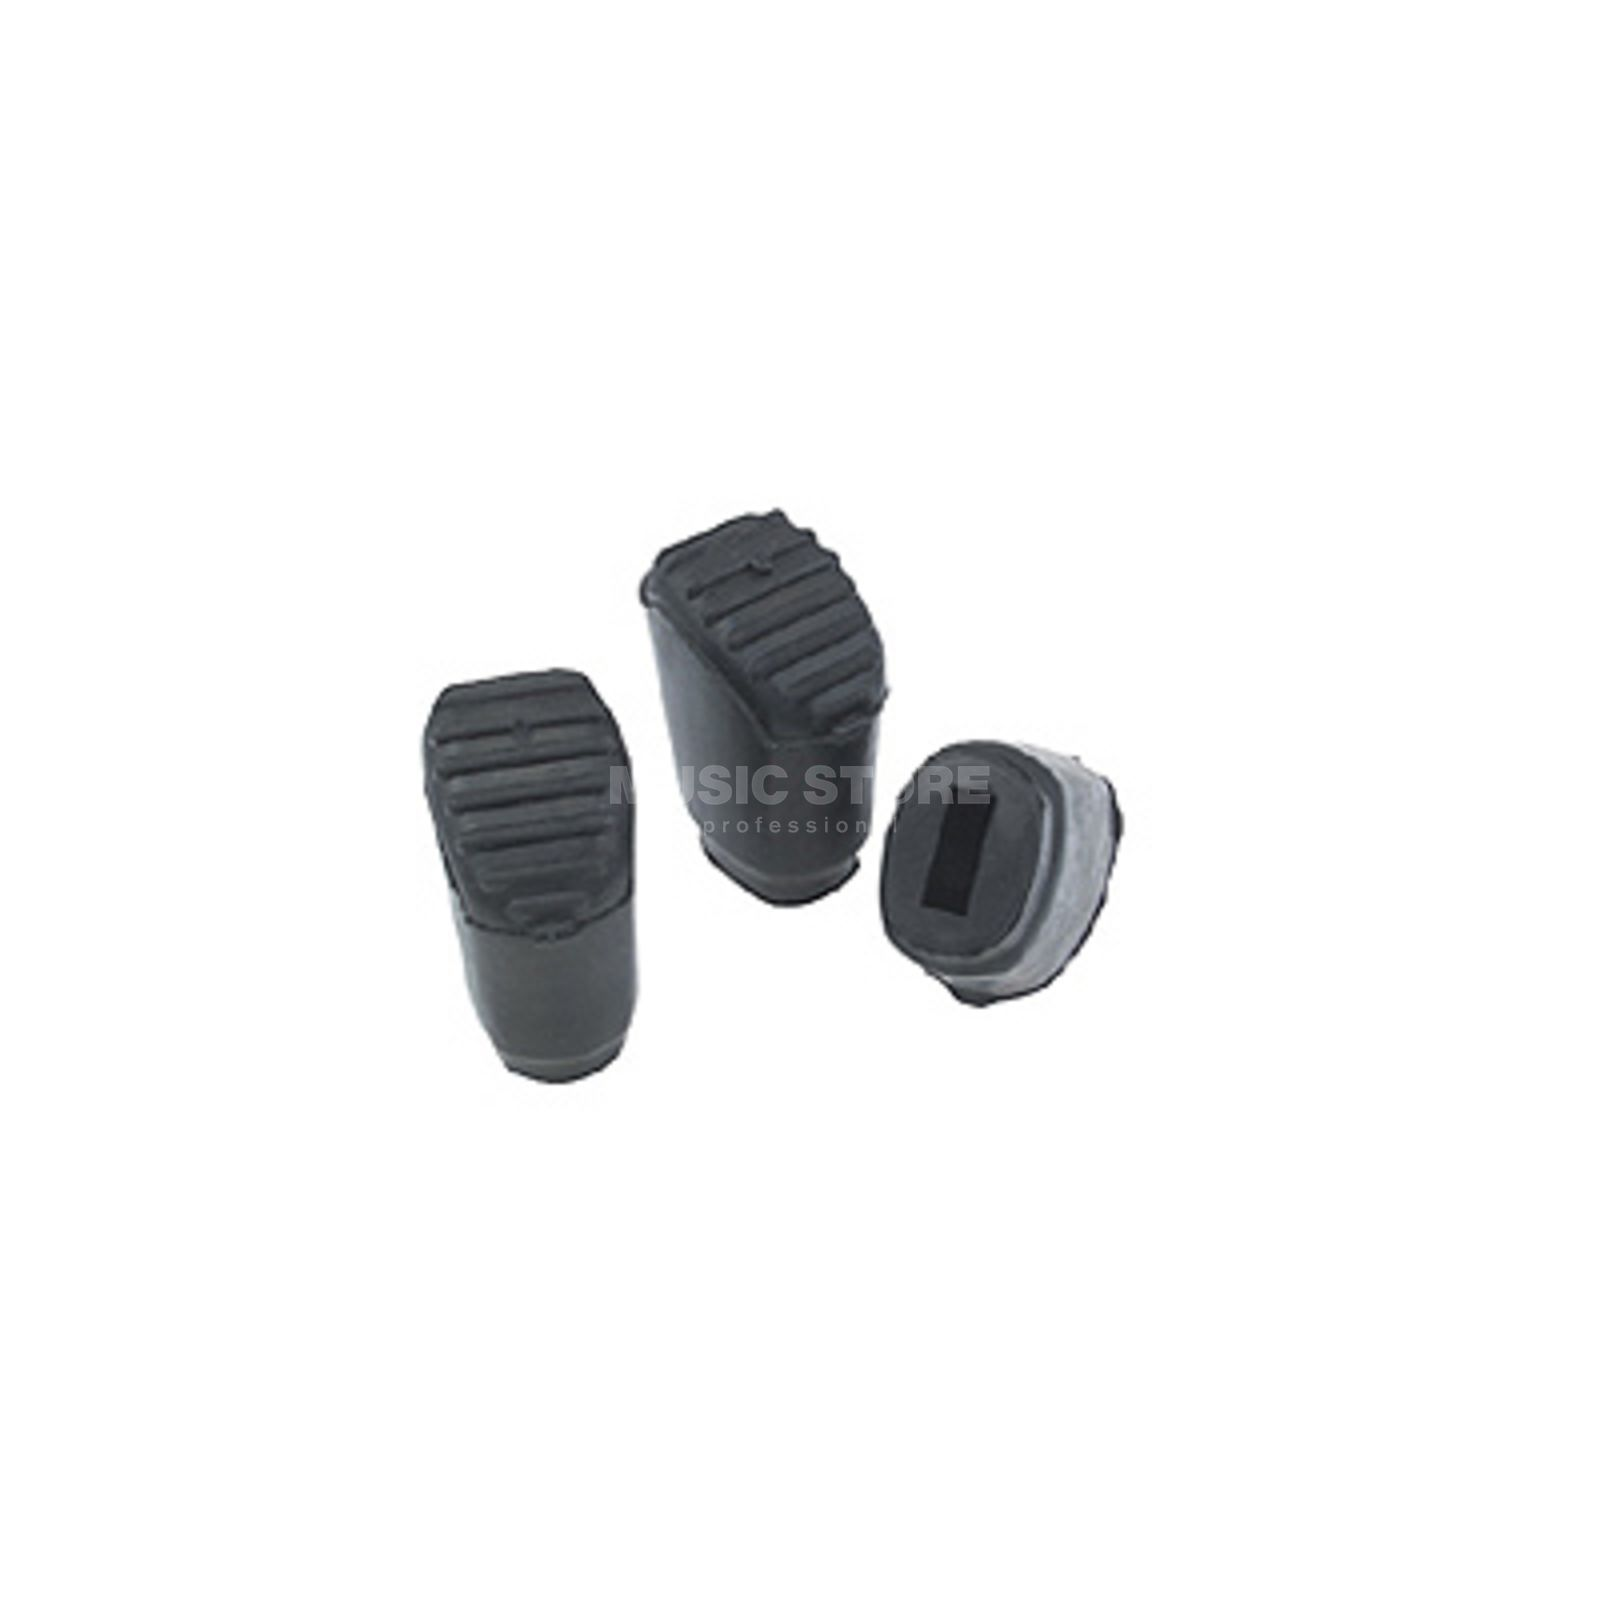 Gibraltar SC-PC07 Rubber feet, large, for cymbal stand, 3 pcs Product Image